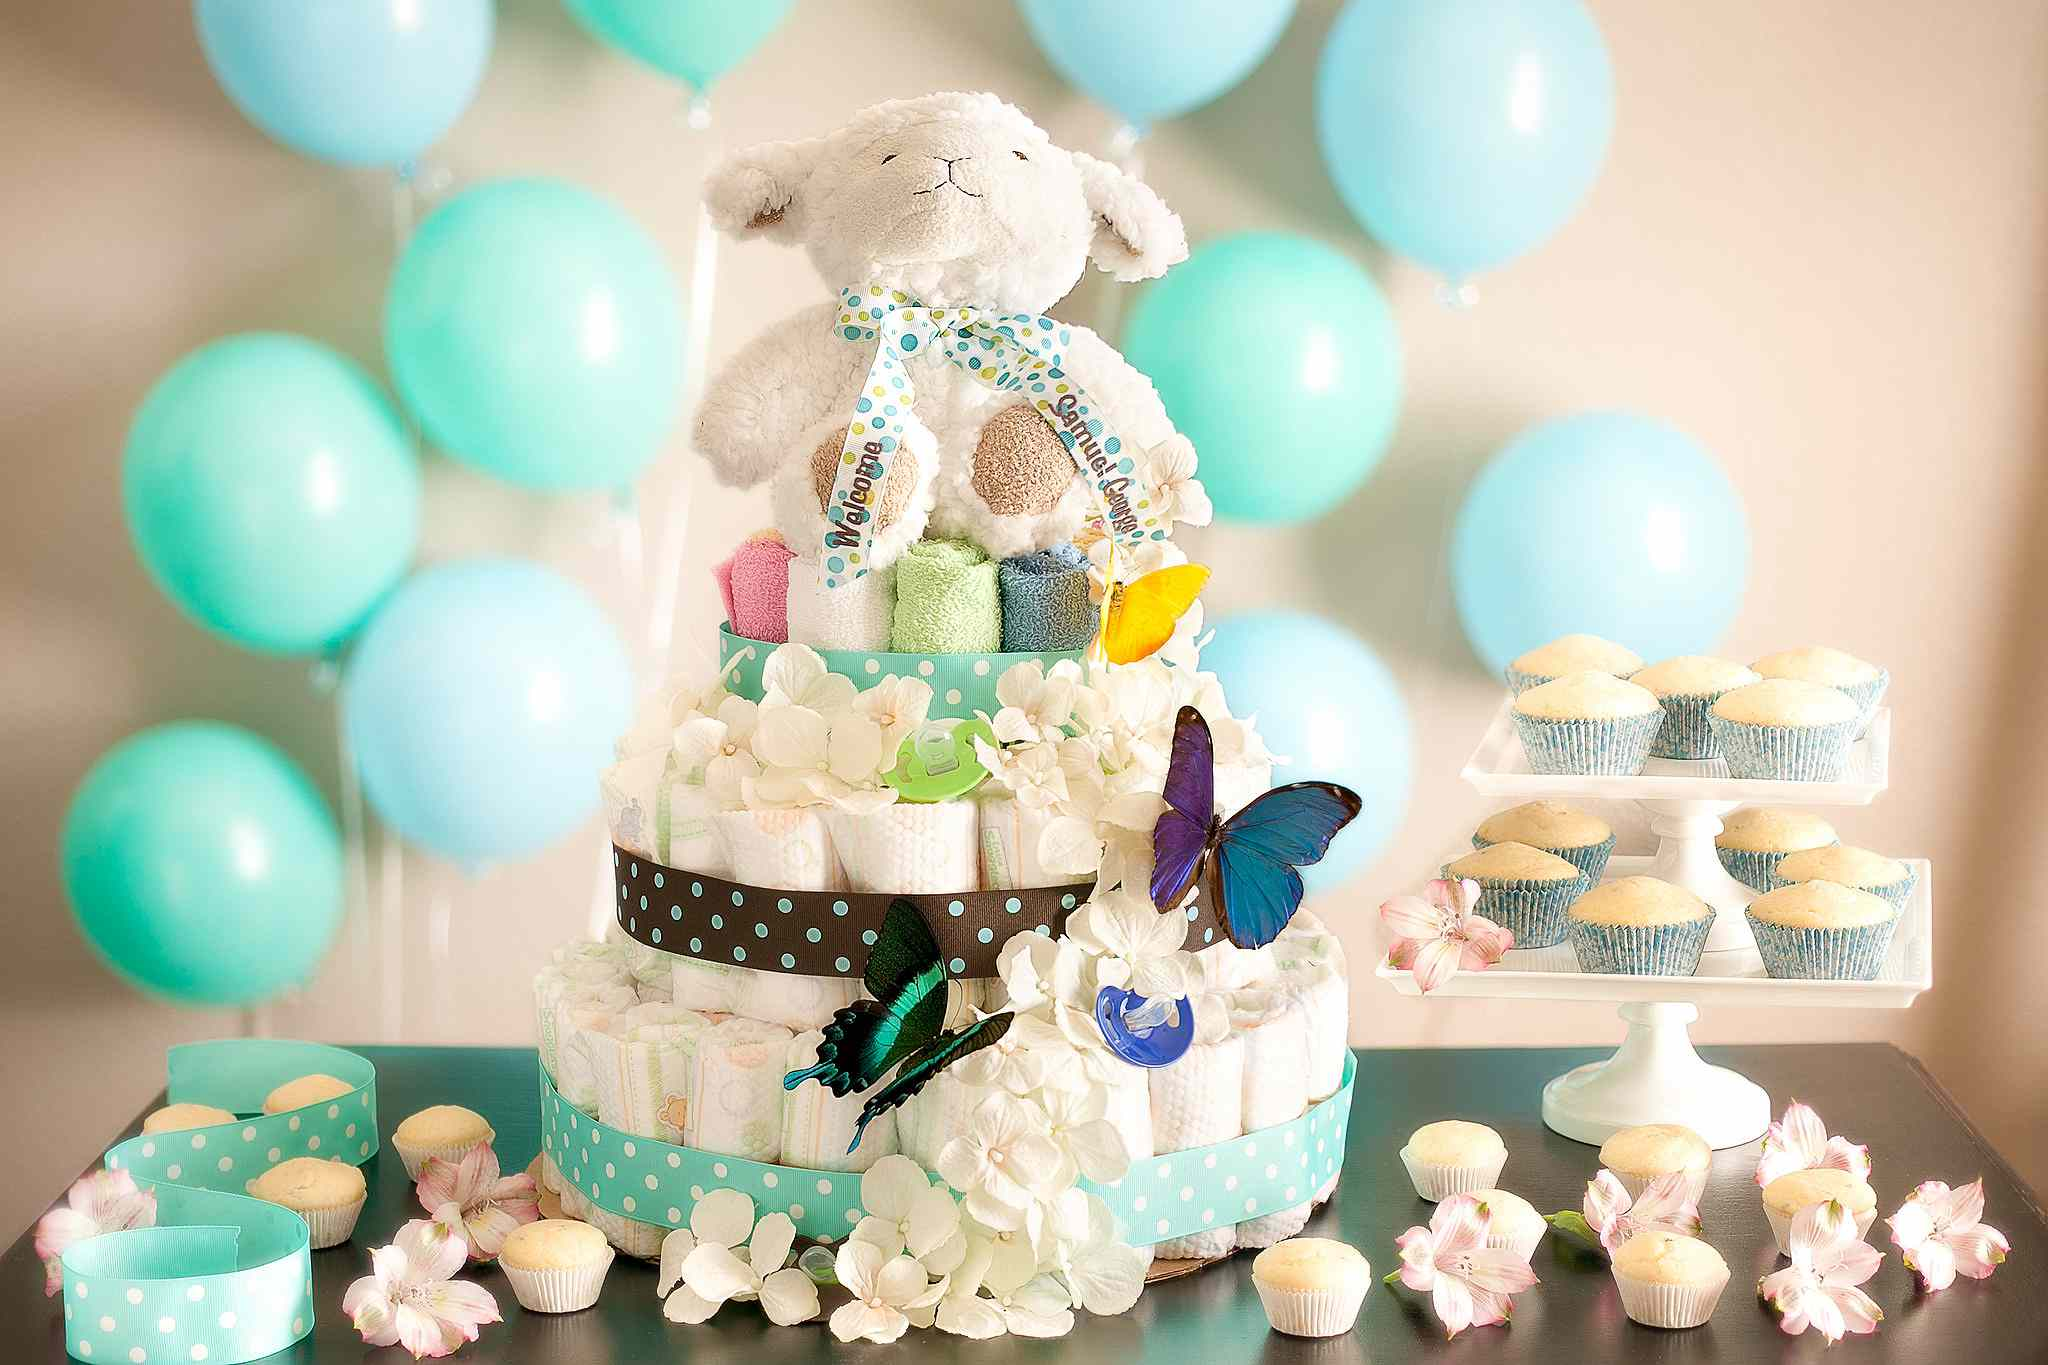 20 DIY Ideas for the Best Baby Shower Ever